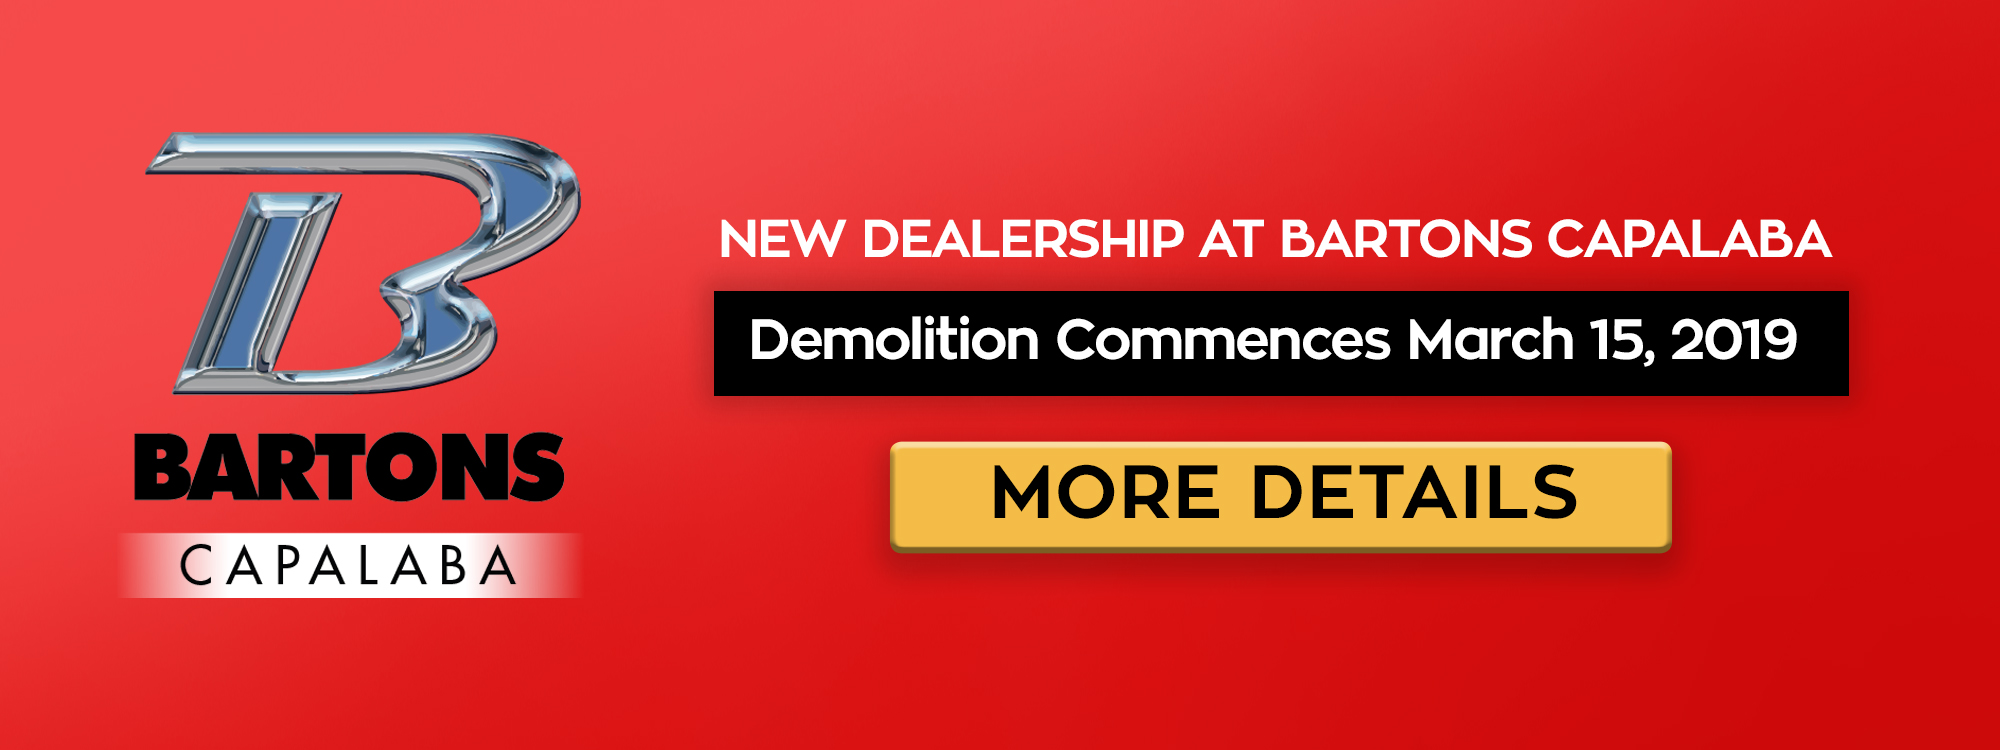 MITS_HOMEpageBanners_CapalabaConstruction